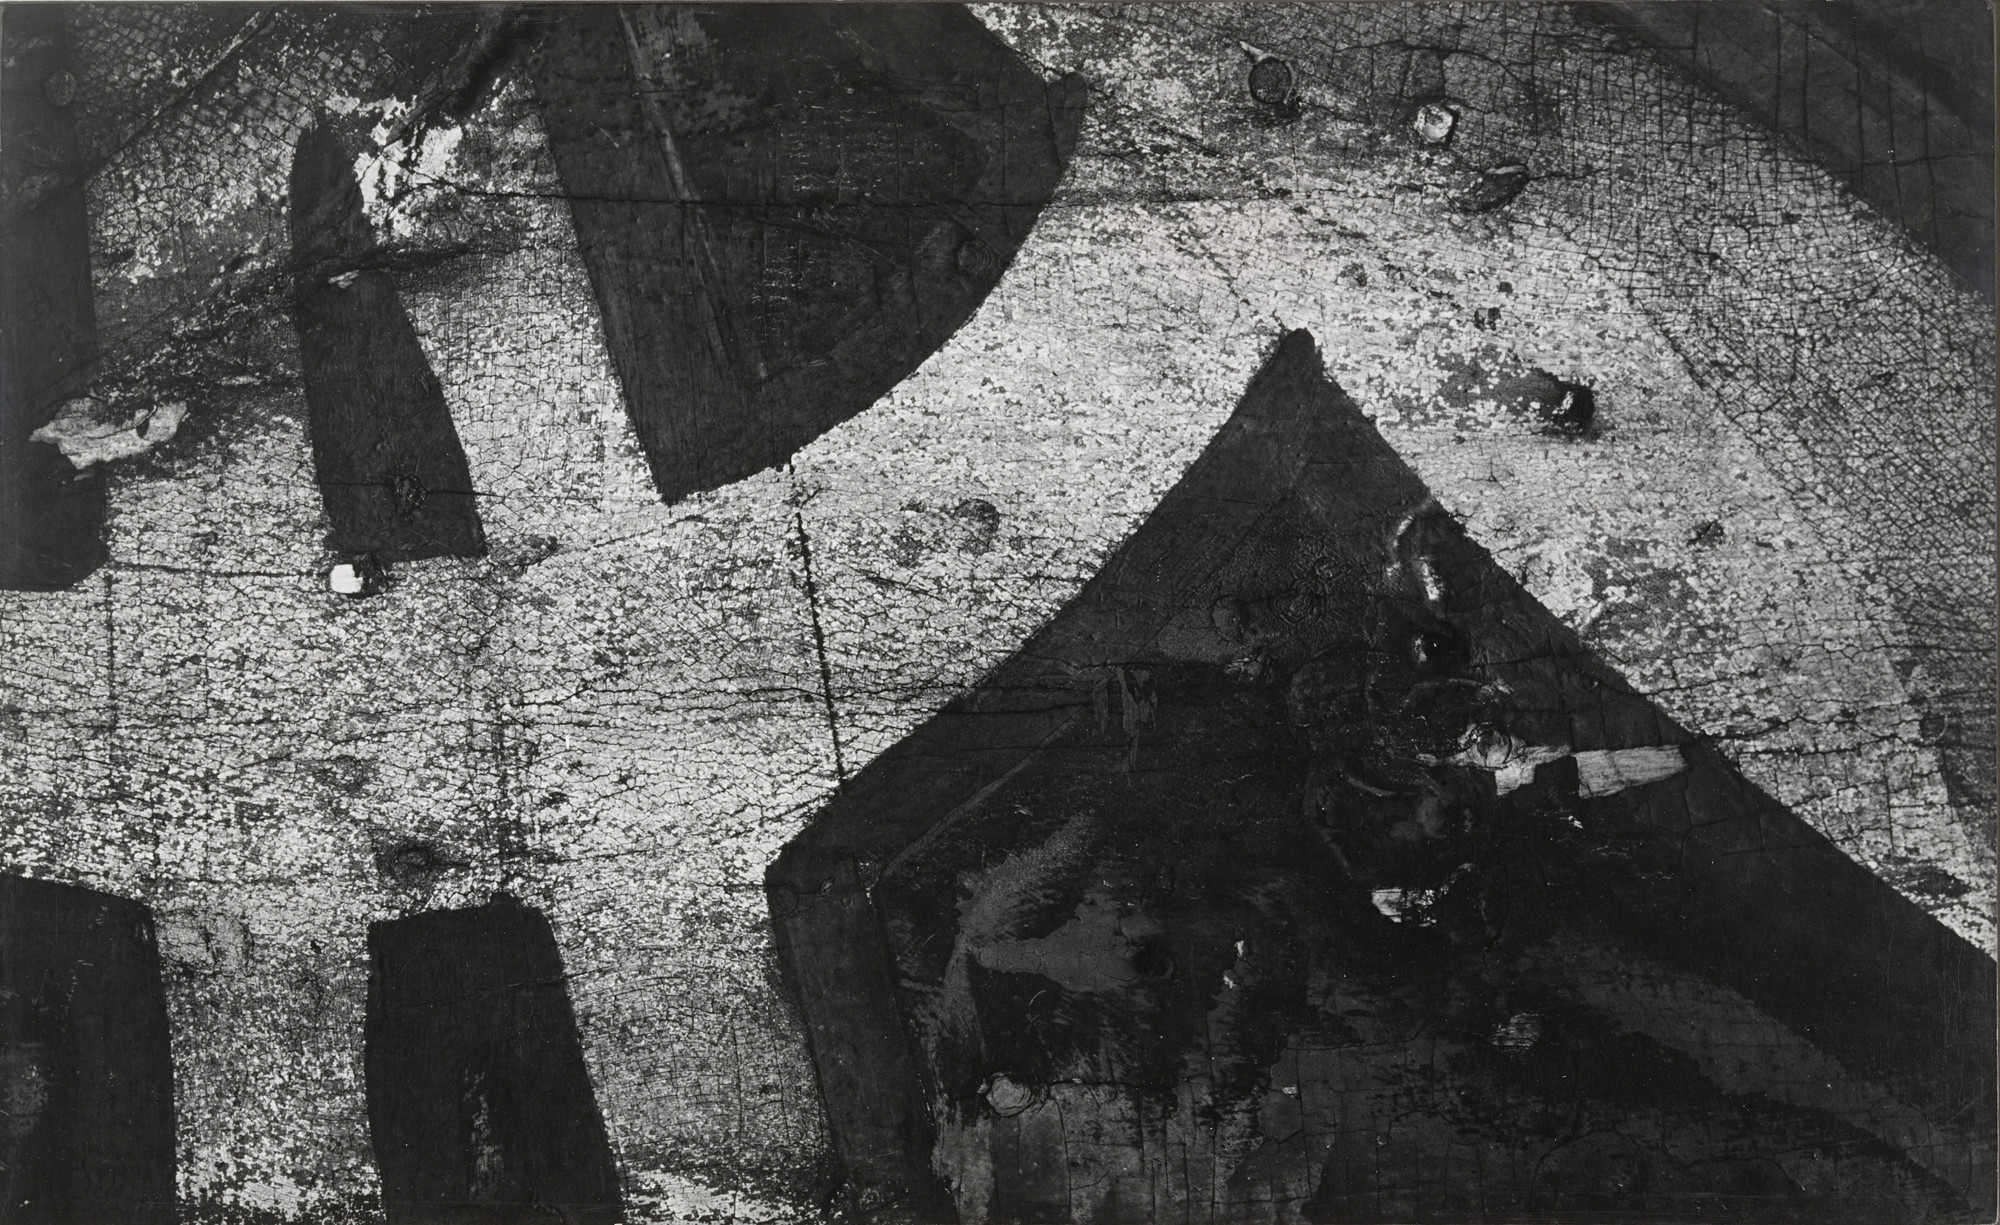 Aaron Siskind. New Jersey 5. 1950